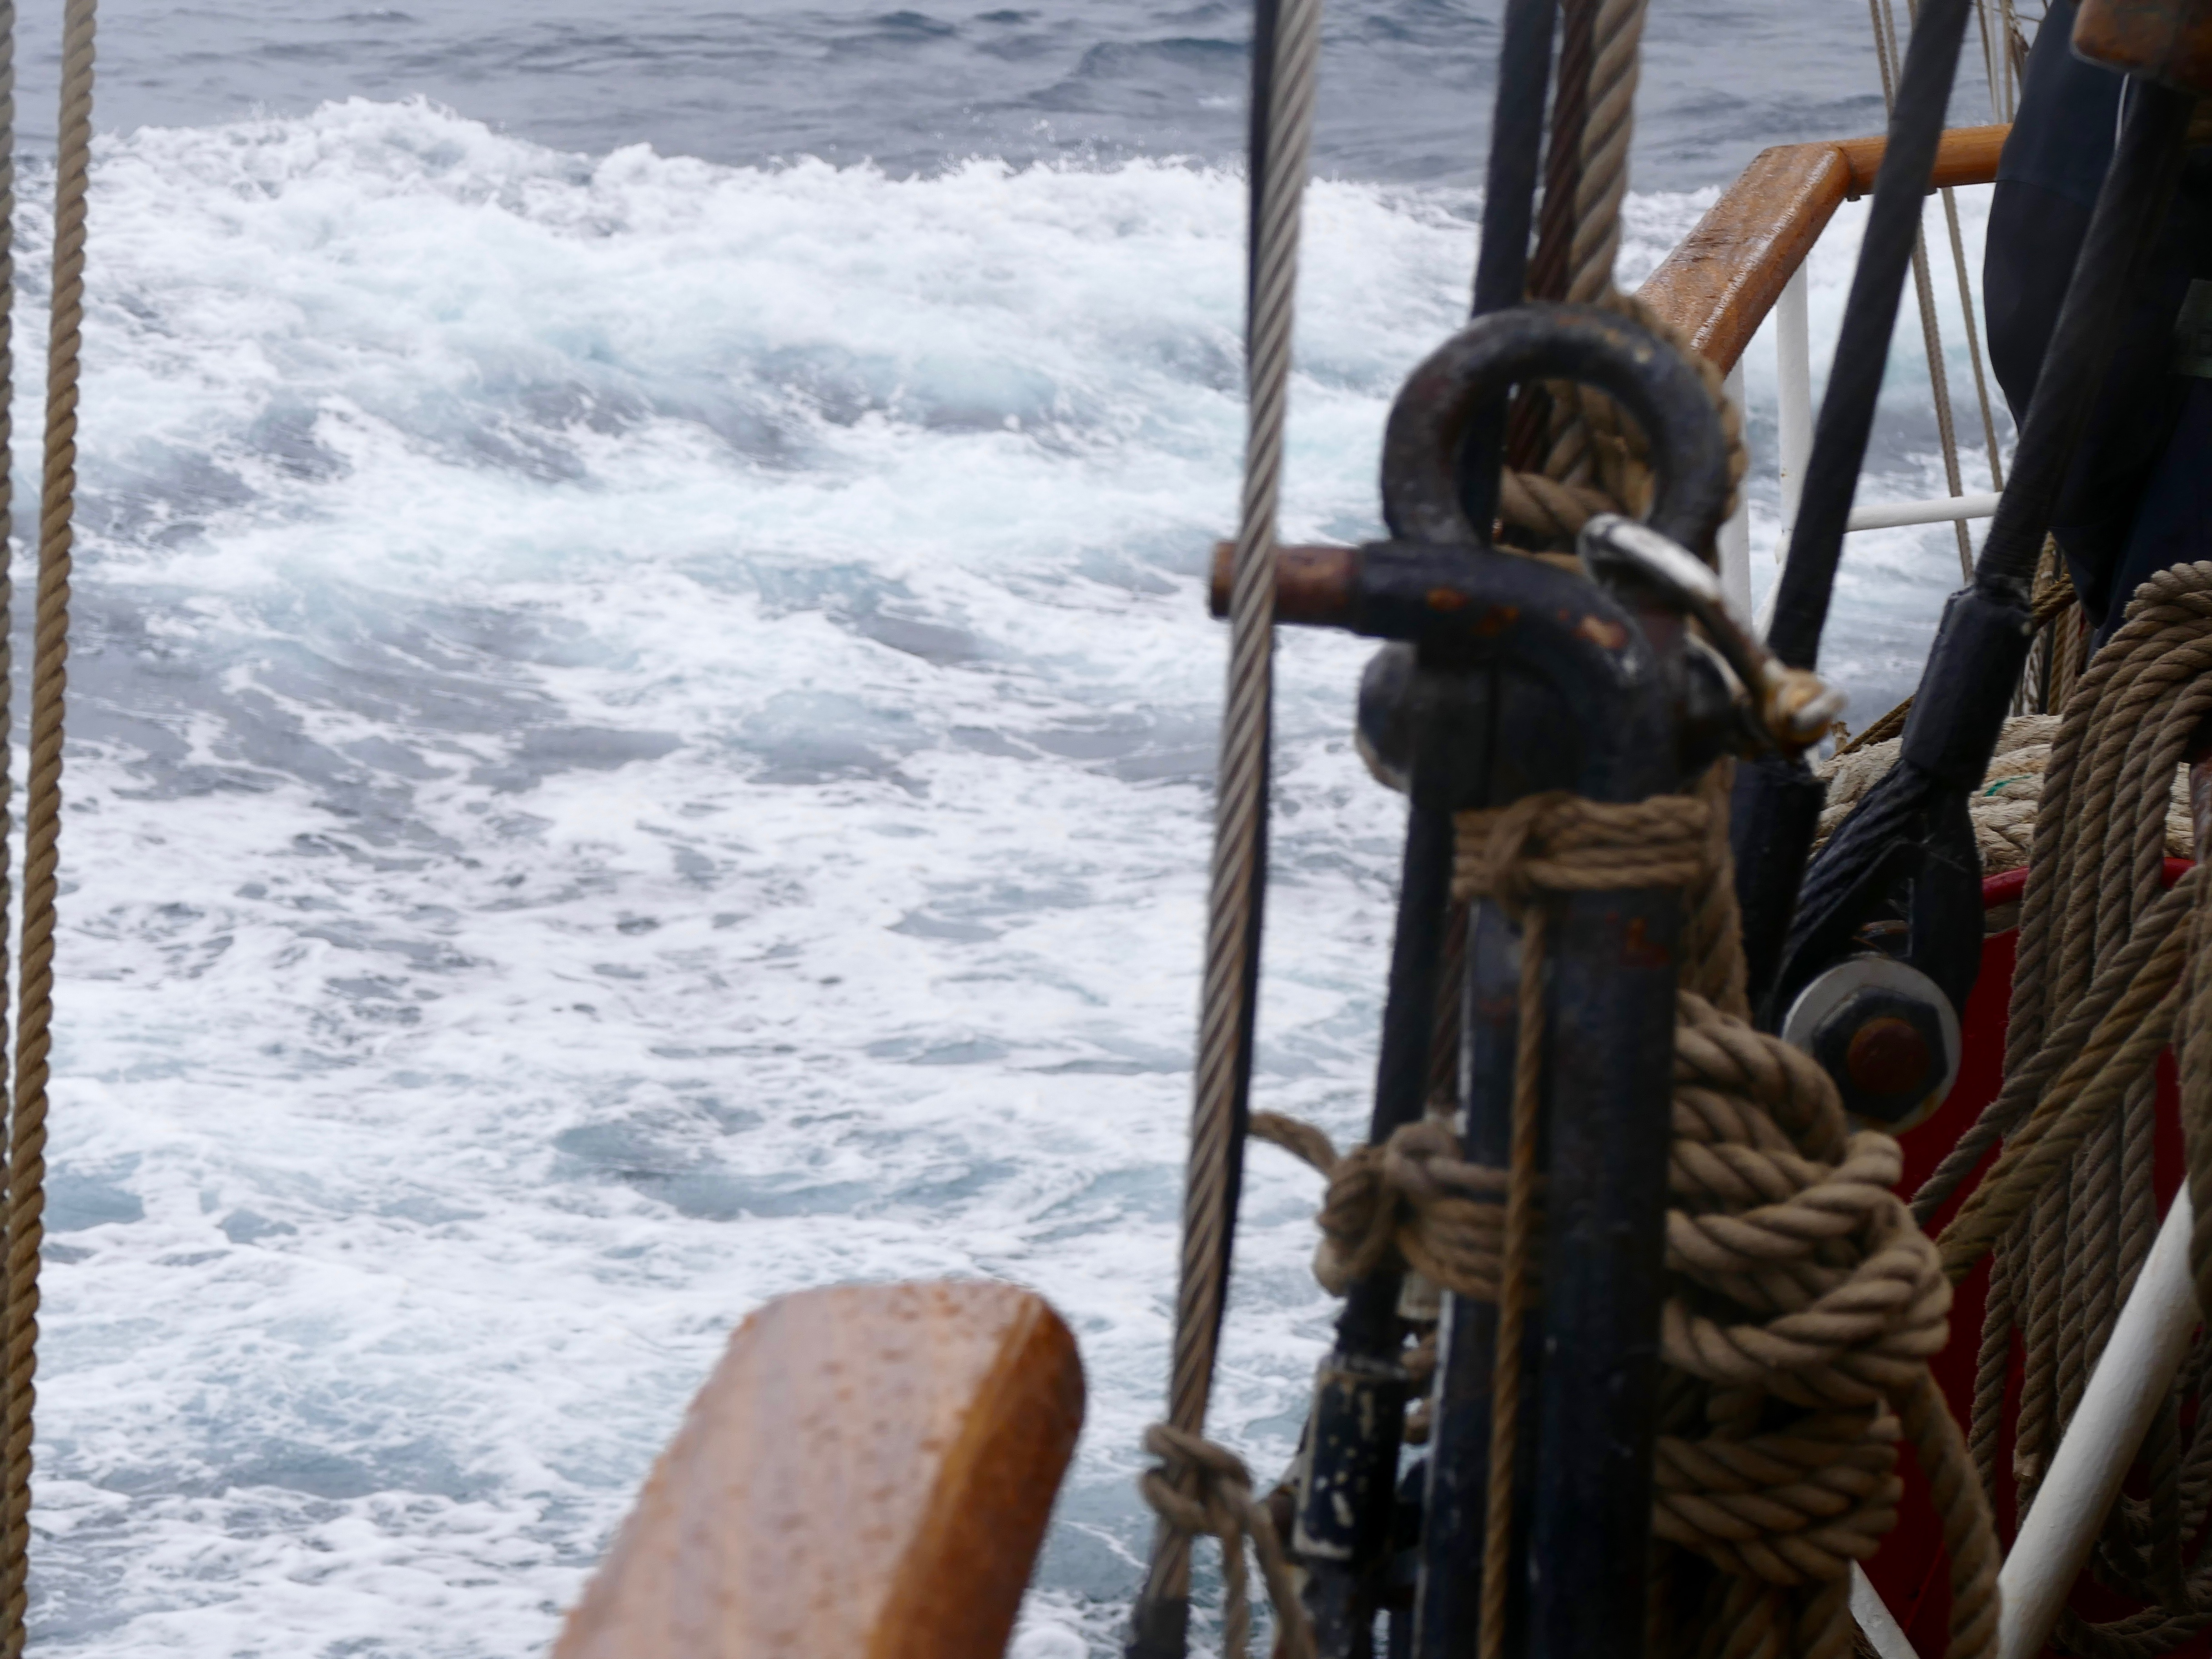 Leaving the land: water under our keel on the way from South Georgia to Tristan de Cunha